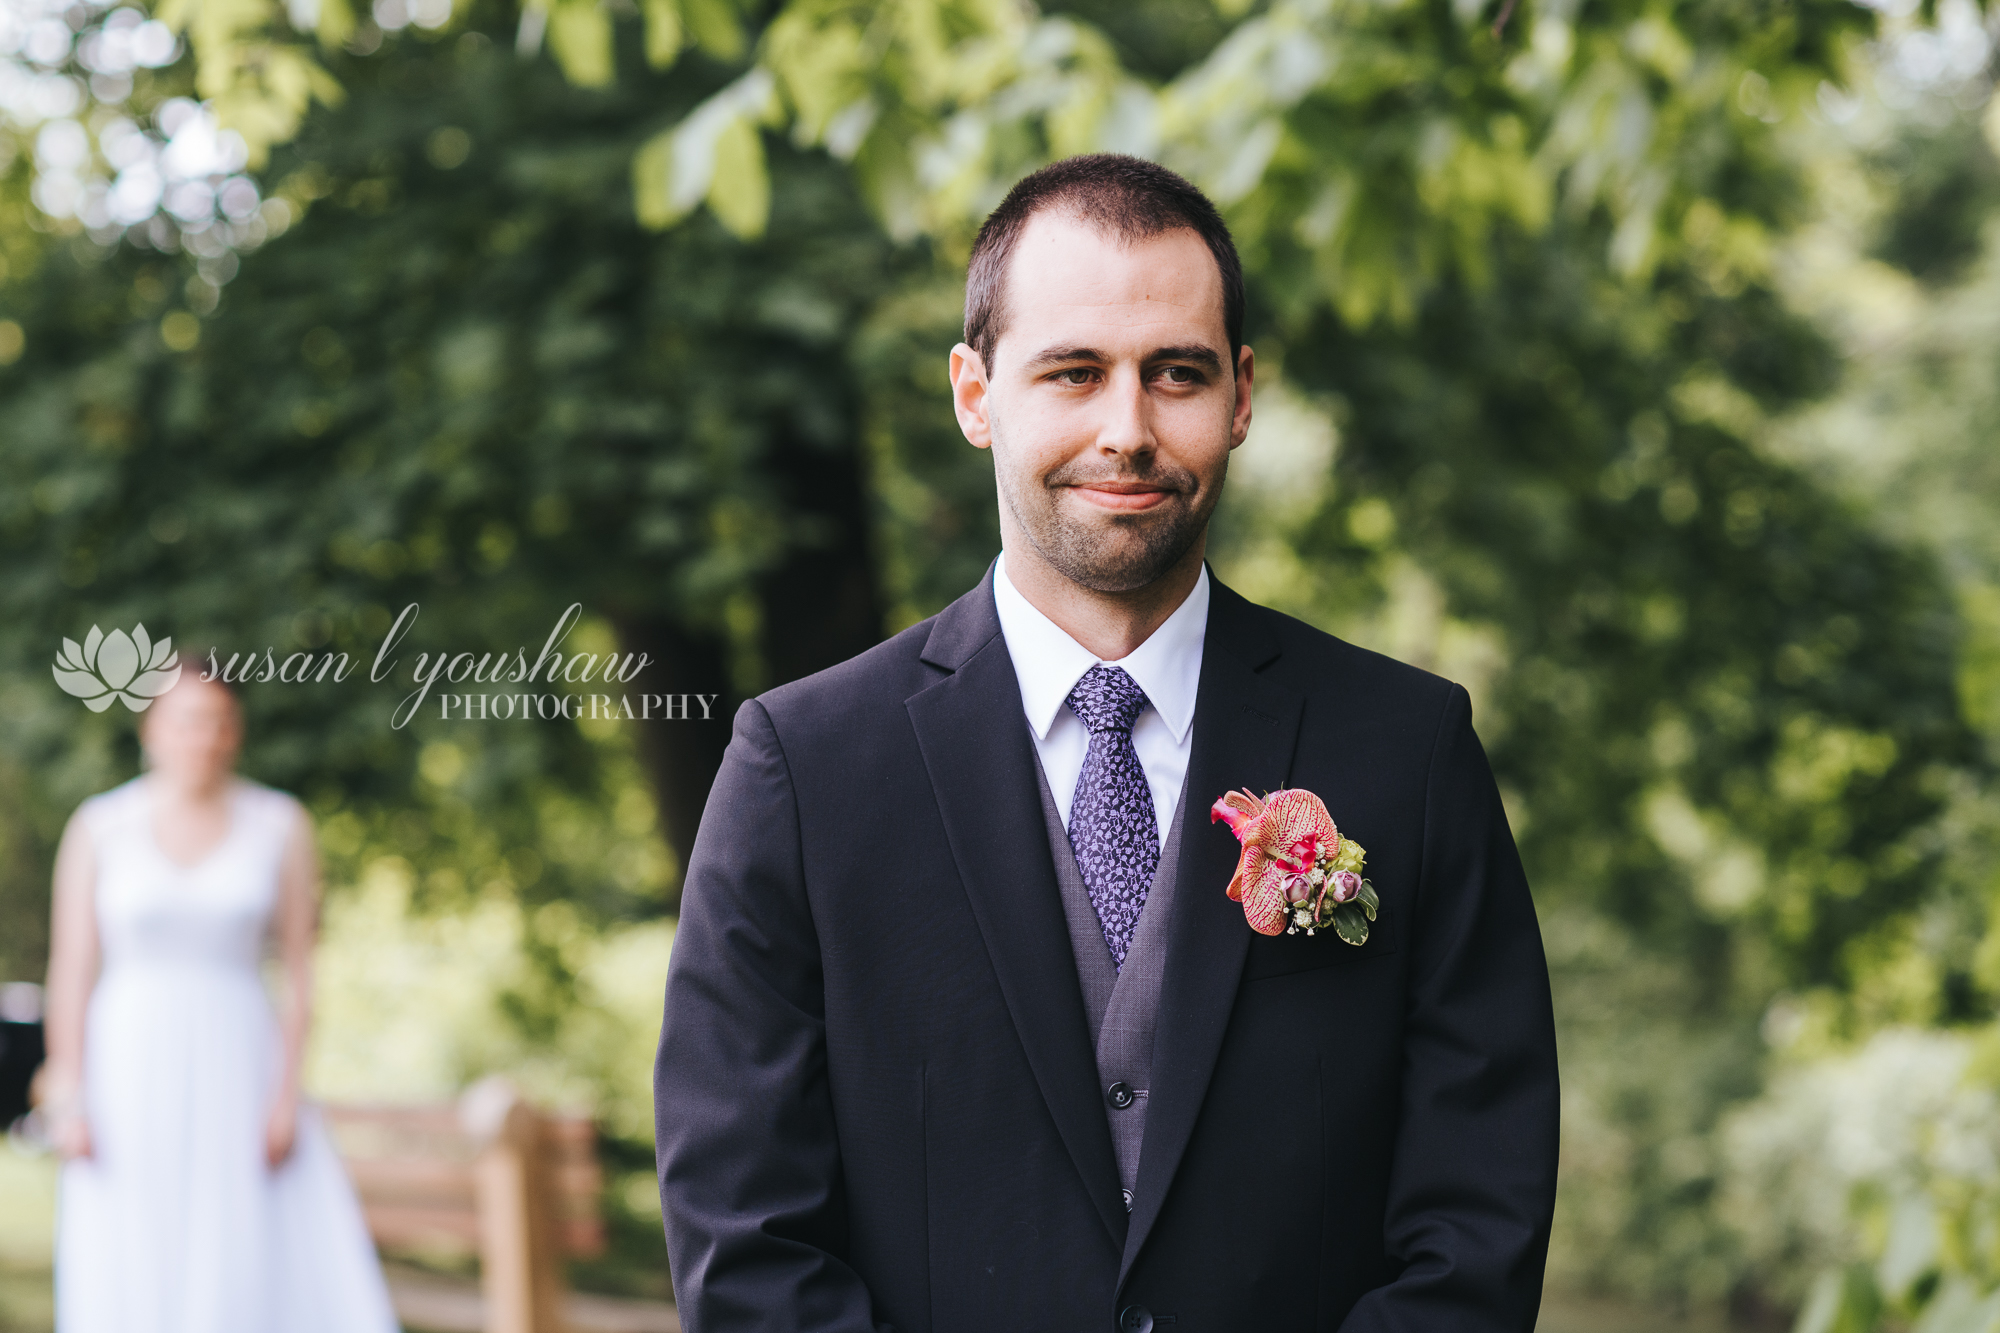 Adena and  Erik Wedding 05-17-2019 SLY Photography-15.jpg